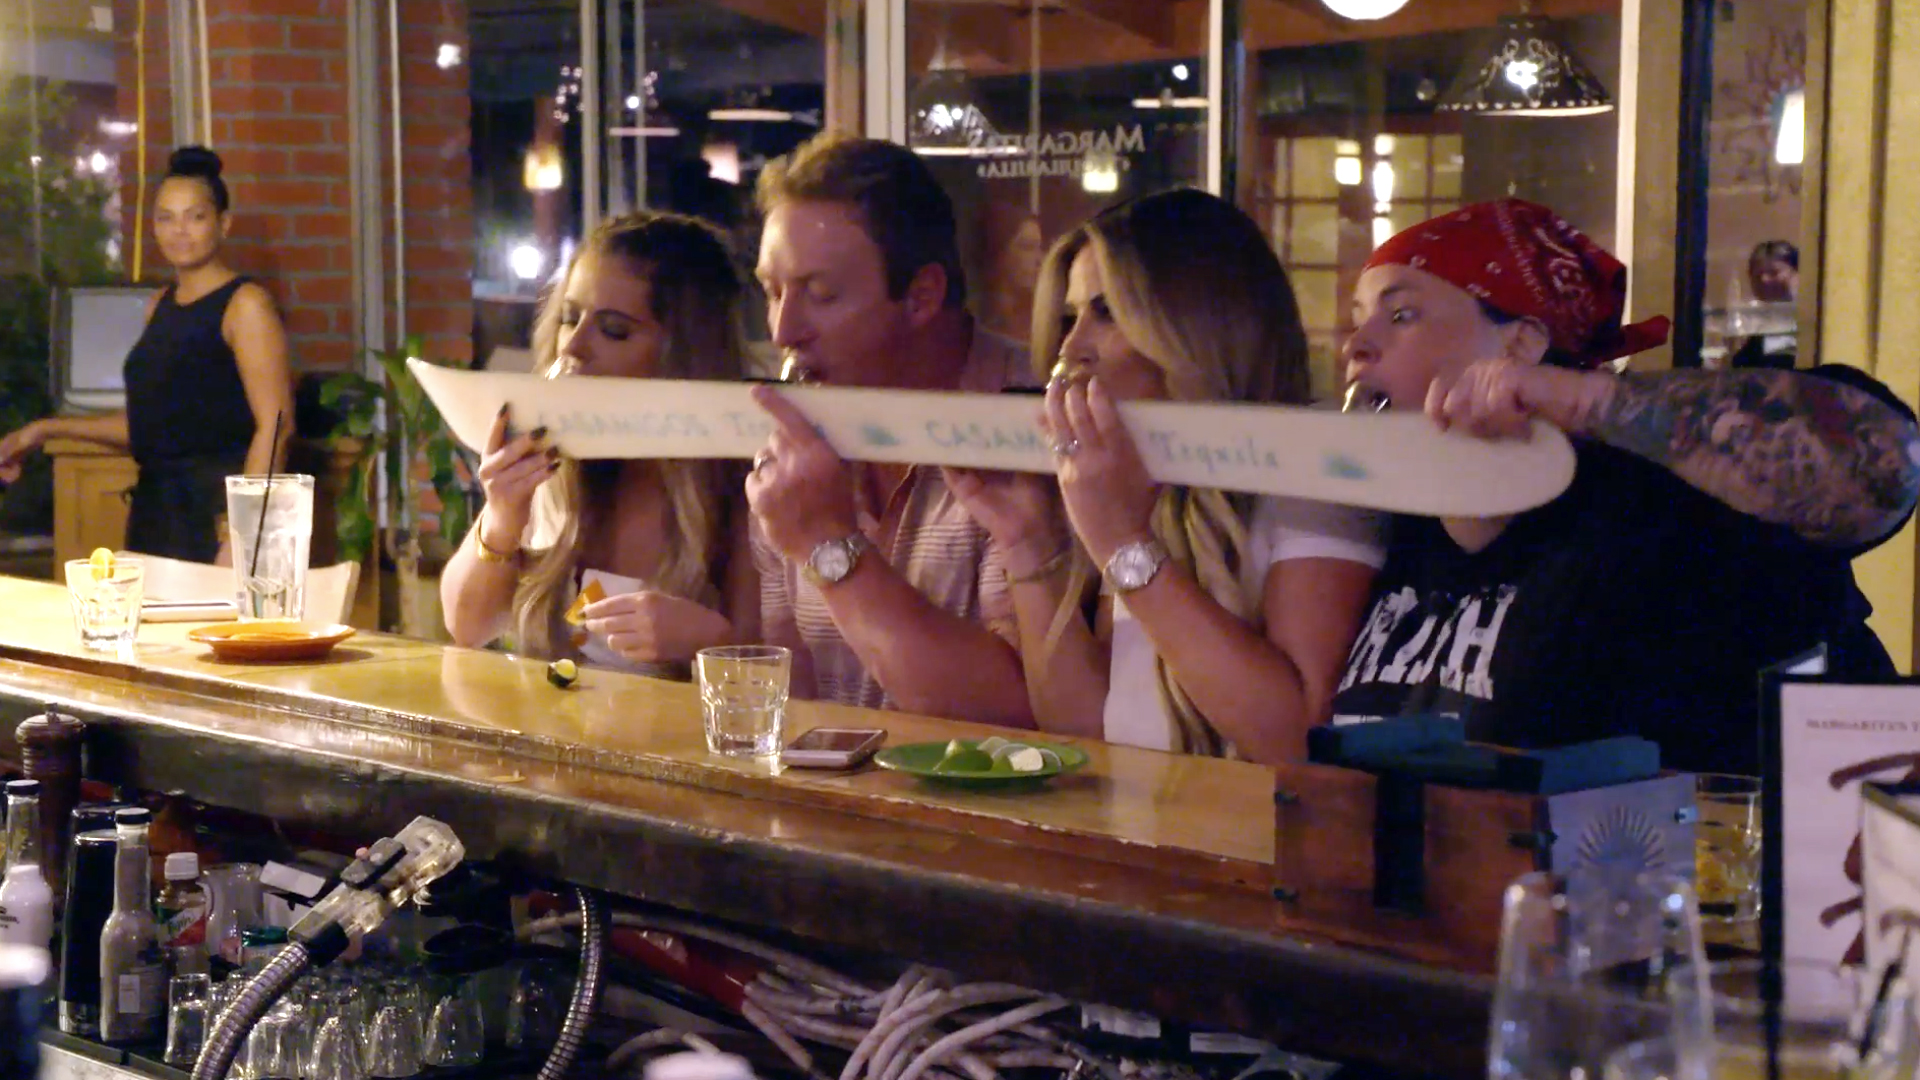 Tracey Bloom Is Back and Doing Tequila Shot Skis With the Biermanns